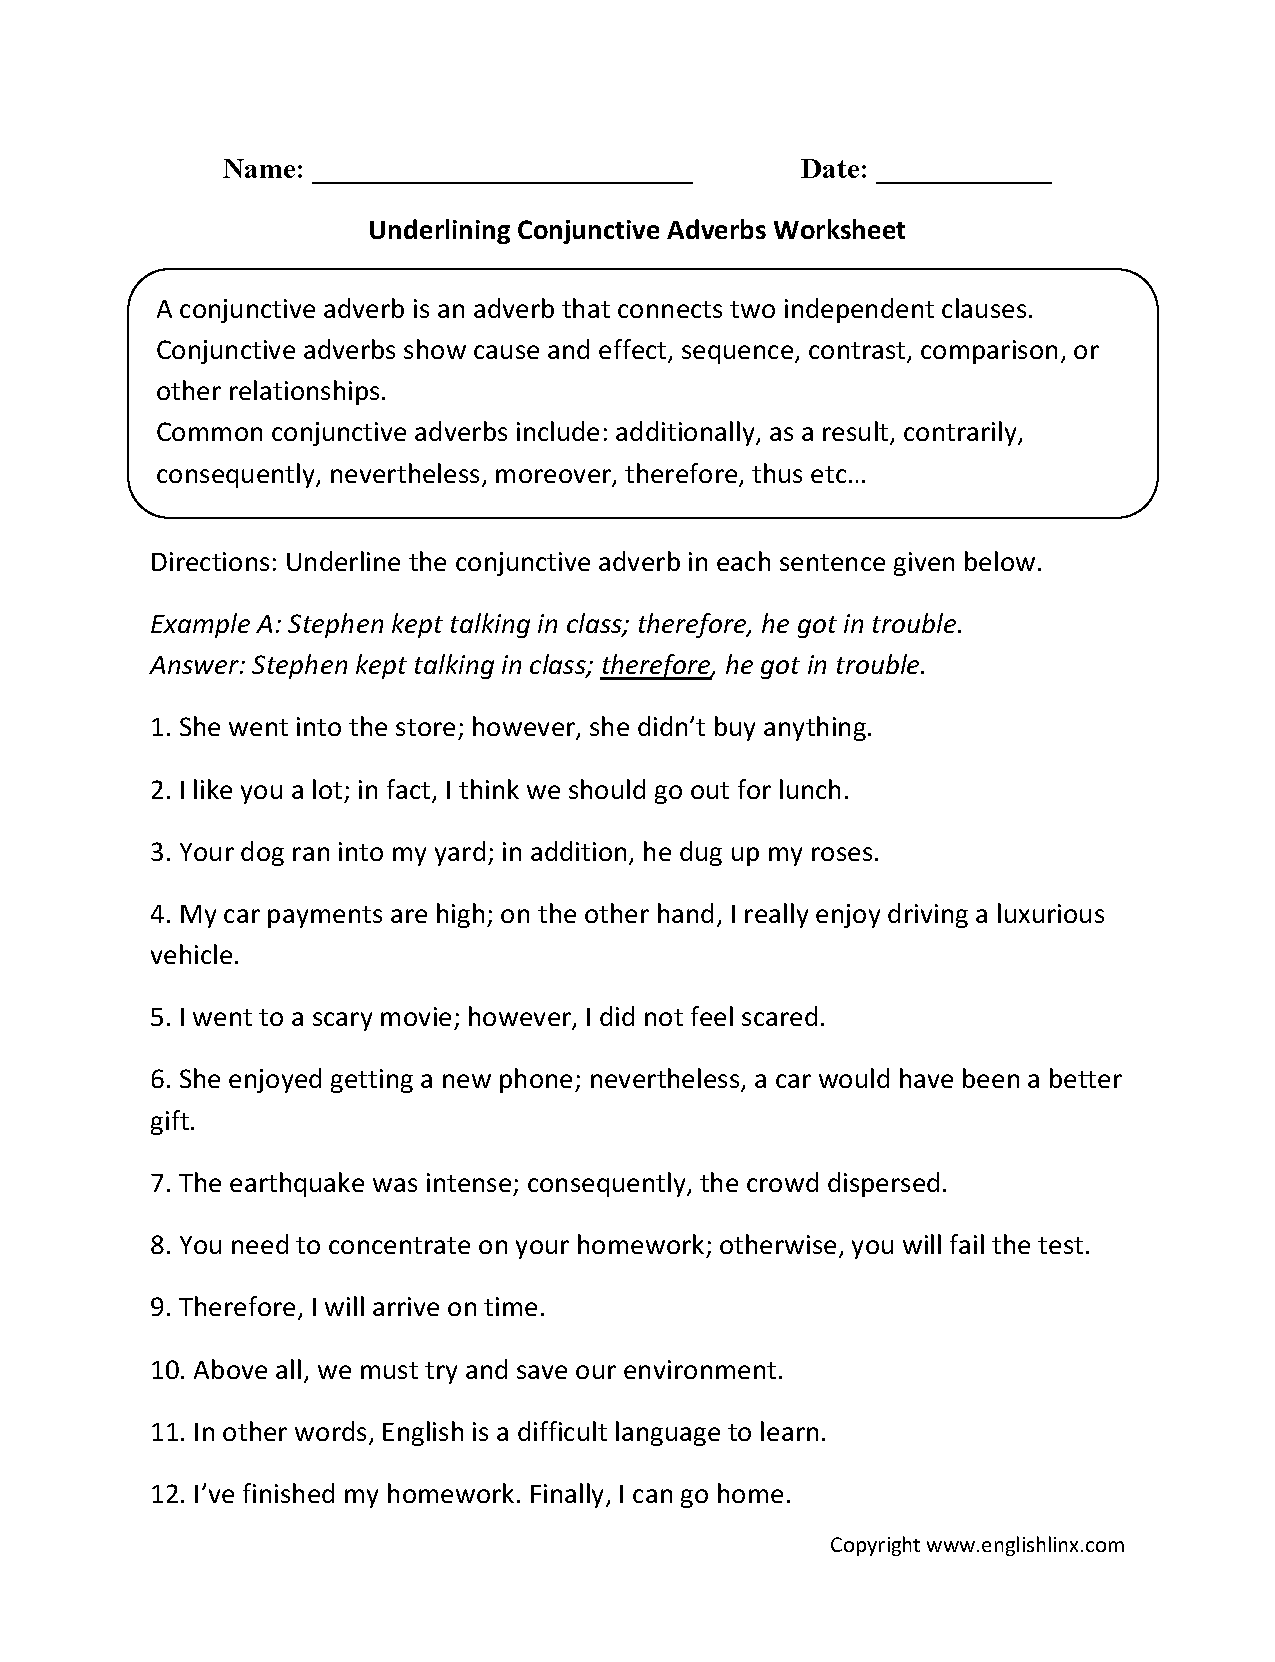 Weirdmailus  Gorgeous Englishlinxcom  Conjunctions Worksheets With Inspiring Worksheet With Beauteous Th Grade Worksheets Also Dichotomous Key Worksheet In Addition Solving Two Step Equations Worksheet And Math Practice Worksheets As Well As Math Worksheets For Kindergarten Additionally Free Preschool Worksheets From Englishlinxcom With Weirdmailus  Inspiring Englishlinxcom  Conjunctions Worksheets With Beauteous Worksheet And Gorgeous Th Grade Worksheets Also Dichotomous Key Worksheet In Addition Solving Two Step Equations Worksheet From Englishlinxcom